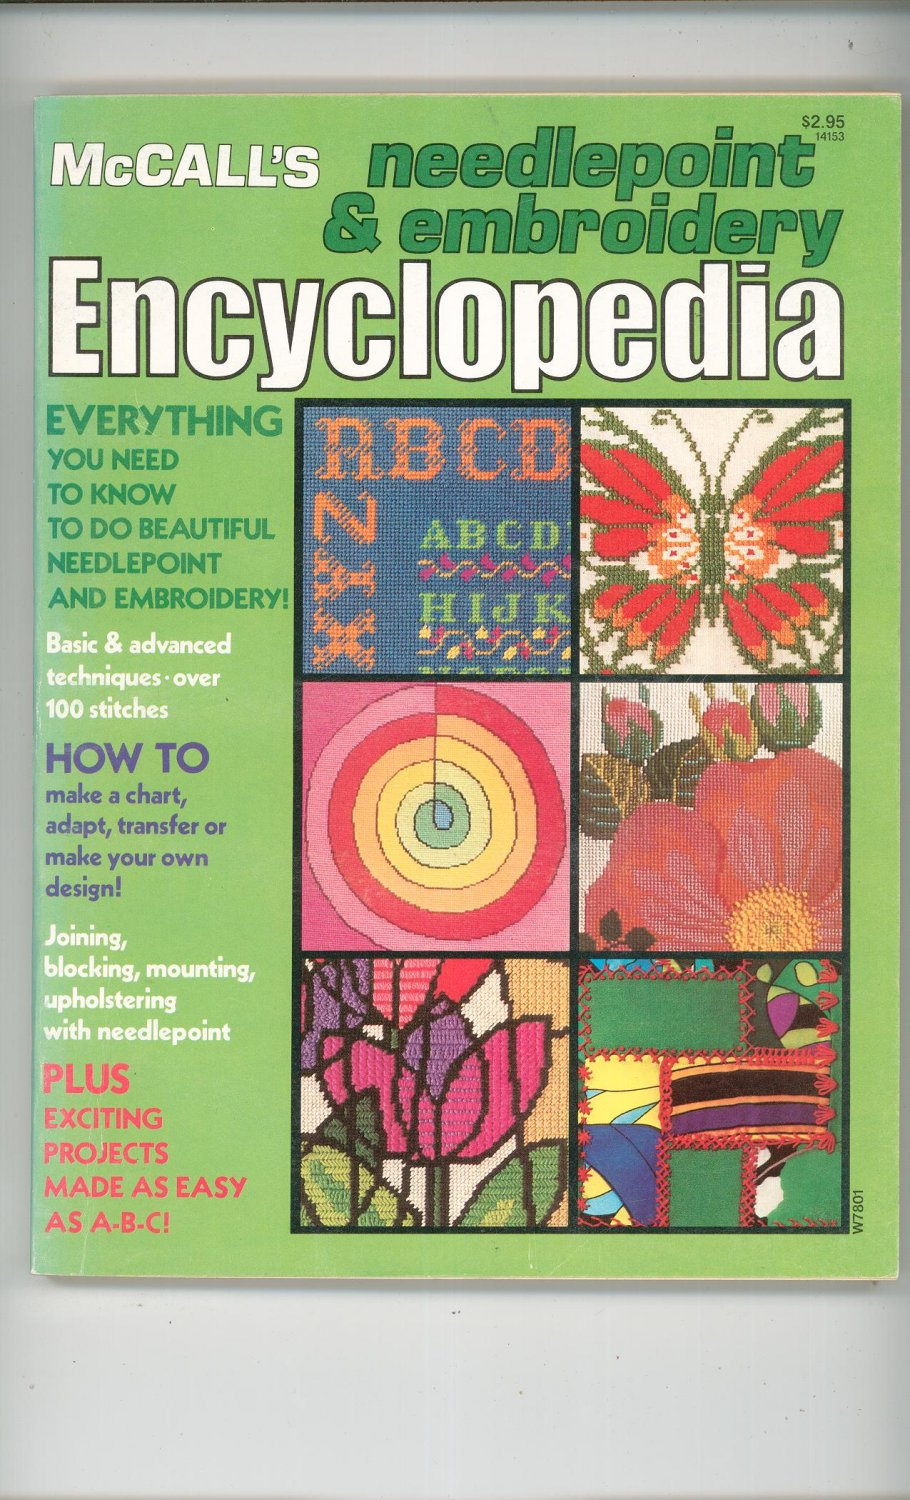 McCall's Needlepoint & Embroidery Encyclopedia Vintage 1978